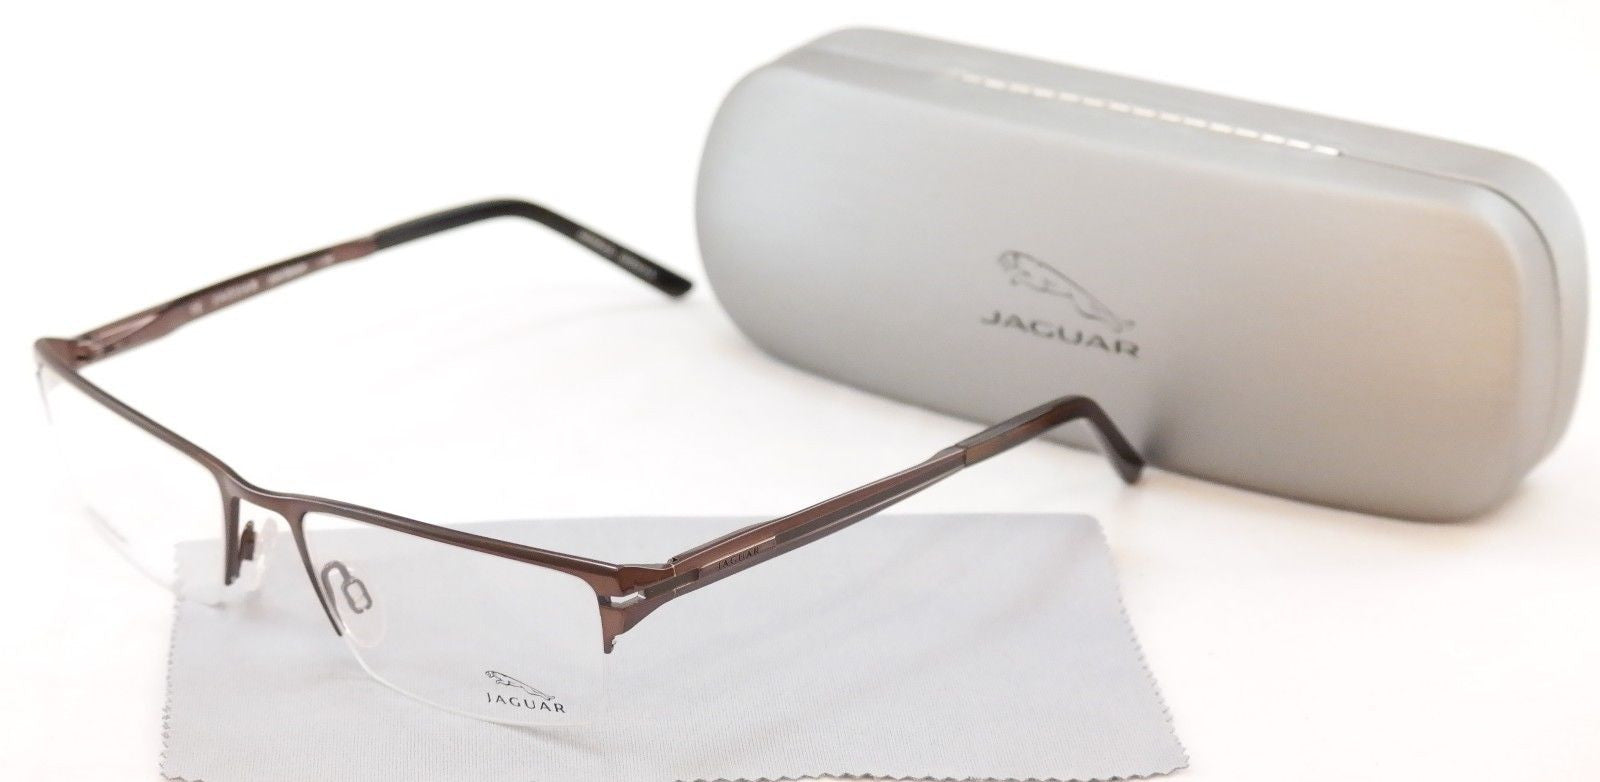 Jaguar Eyeglasses 39504-510 Brown Sand Metal Frame Germany Made 54 ...